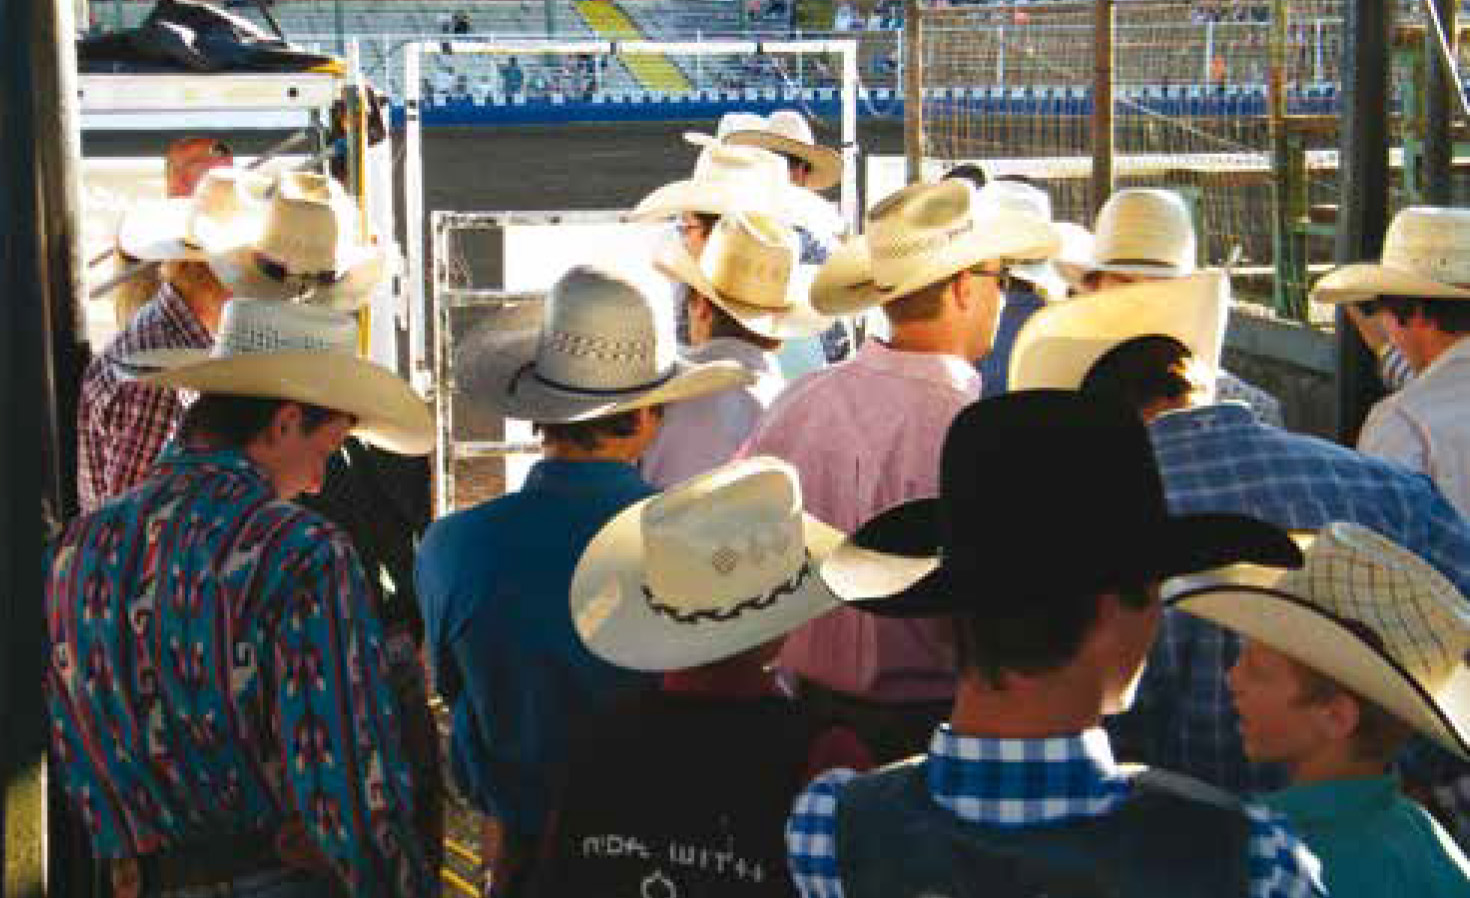 Cowboys awaiting their introduction into the arena to kickoff the Challenge of Champions Tour Stop in Molalla, OR.